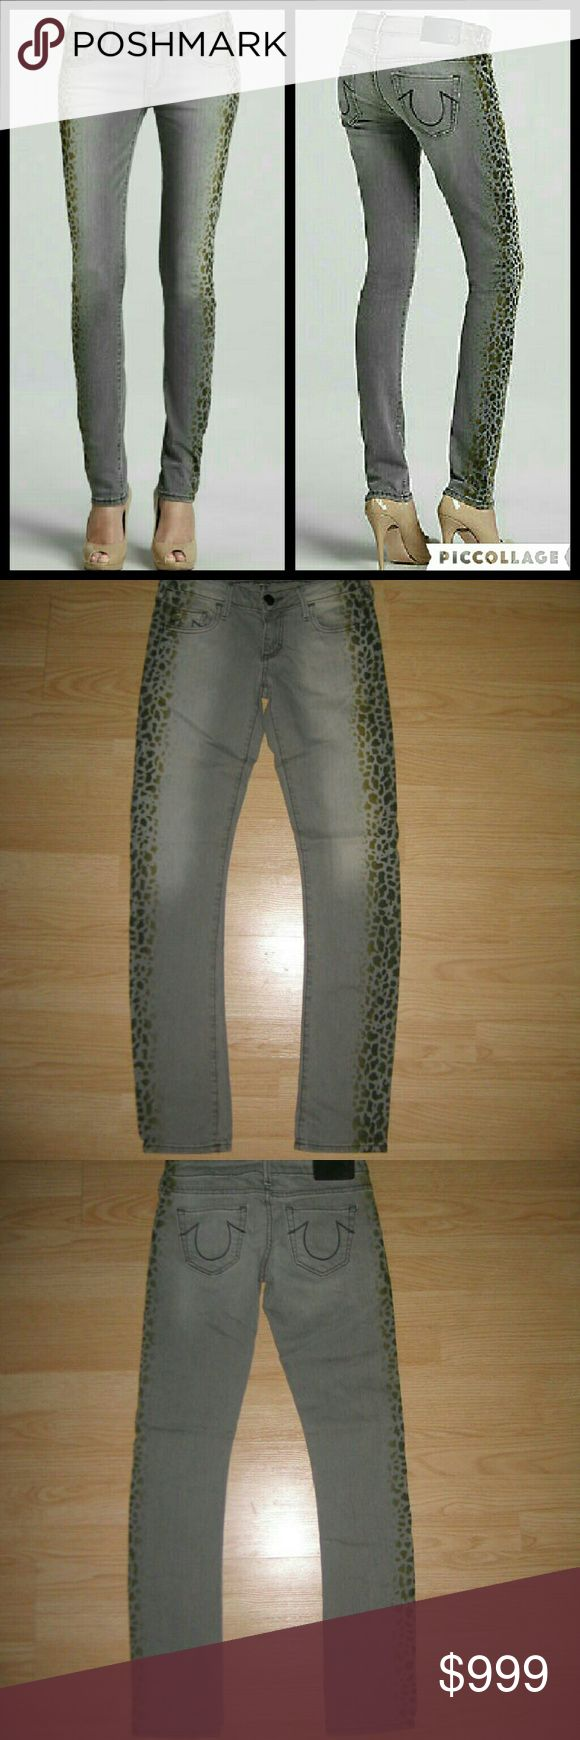 "True Religion Jude Leopard Print Skinny Jeans These jeans are preloved but still in very good condition. They are the Jude Leopard Print Skinny jean in Sand Drifter. Made of 98% cotton 2% spandex. Unfortunately the tags have been cut off so I don't know the size so please check measurements below for fit. But I think these are like a sz 26 maybe a 27.  Waist across with natural dip is 14"" Waist across when aligned is 14.5"" Front Rise is 6.75"" Inseam is 31"" True Religion Jeans Skinny"